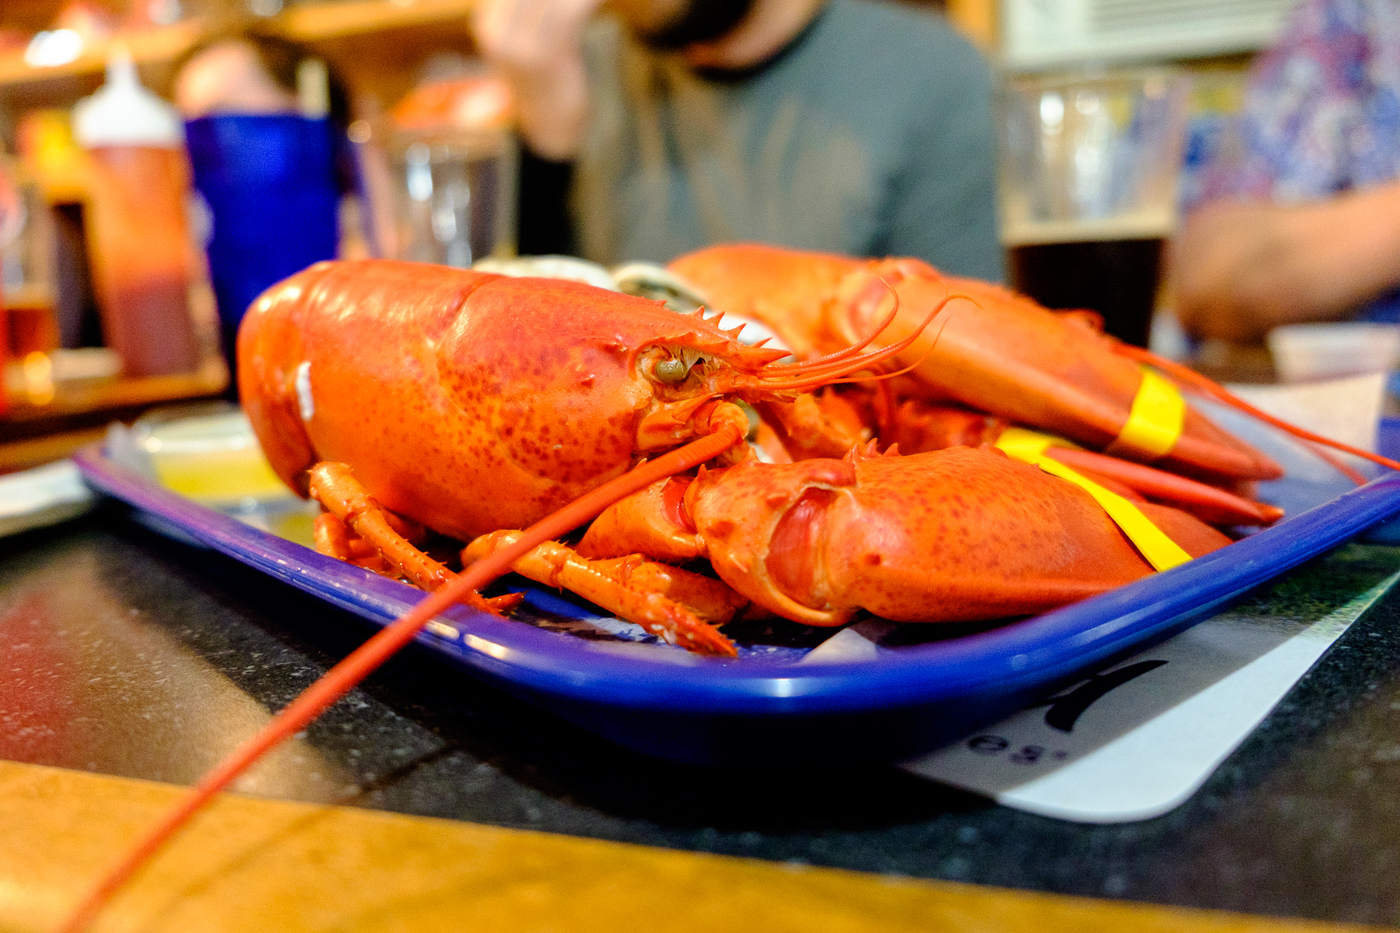 Our annual lobster feast in Acadia, Maine